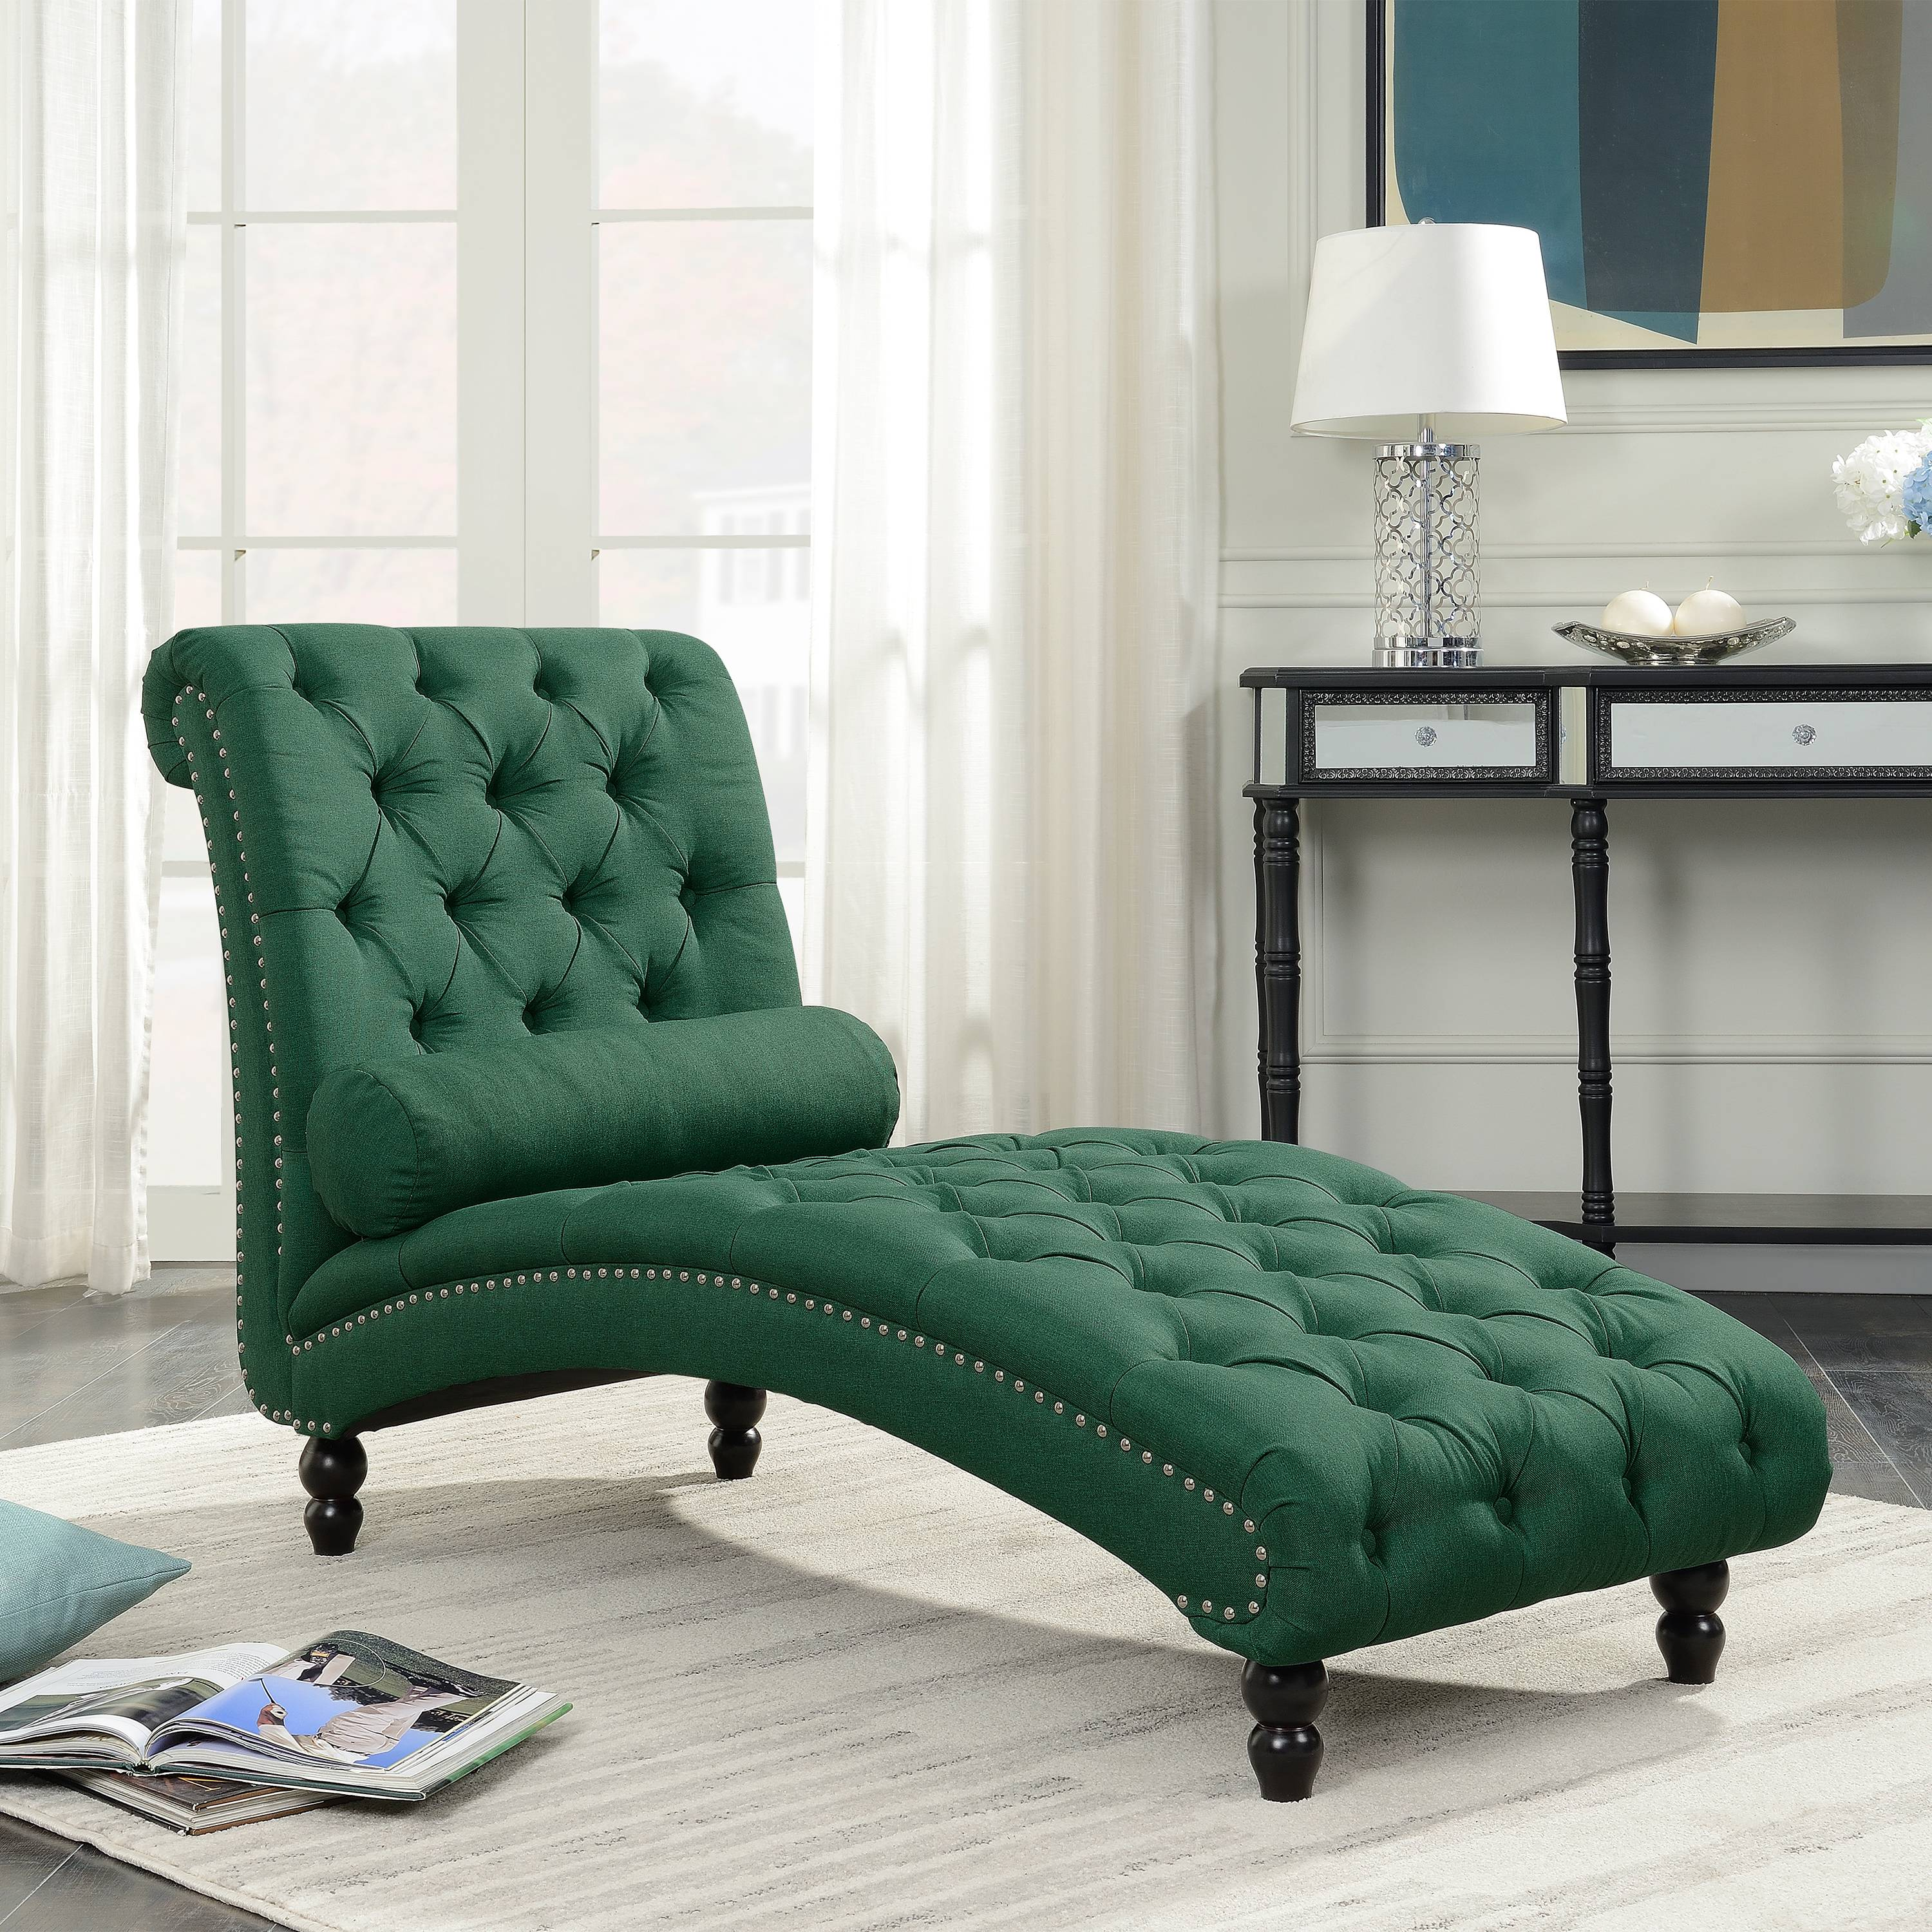 Details About Chesterfield Chaise Lounge Armless Chair Modern Sofa Bedroom Living Room Tufted